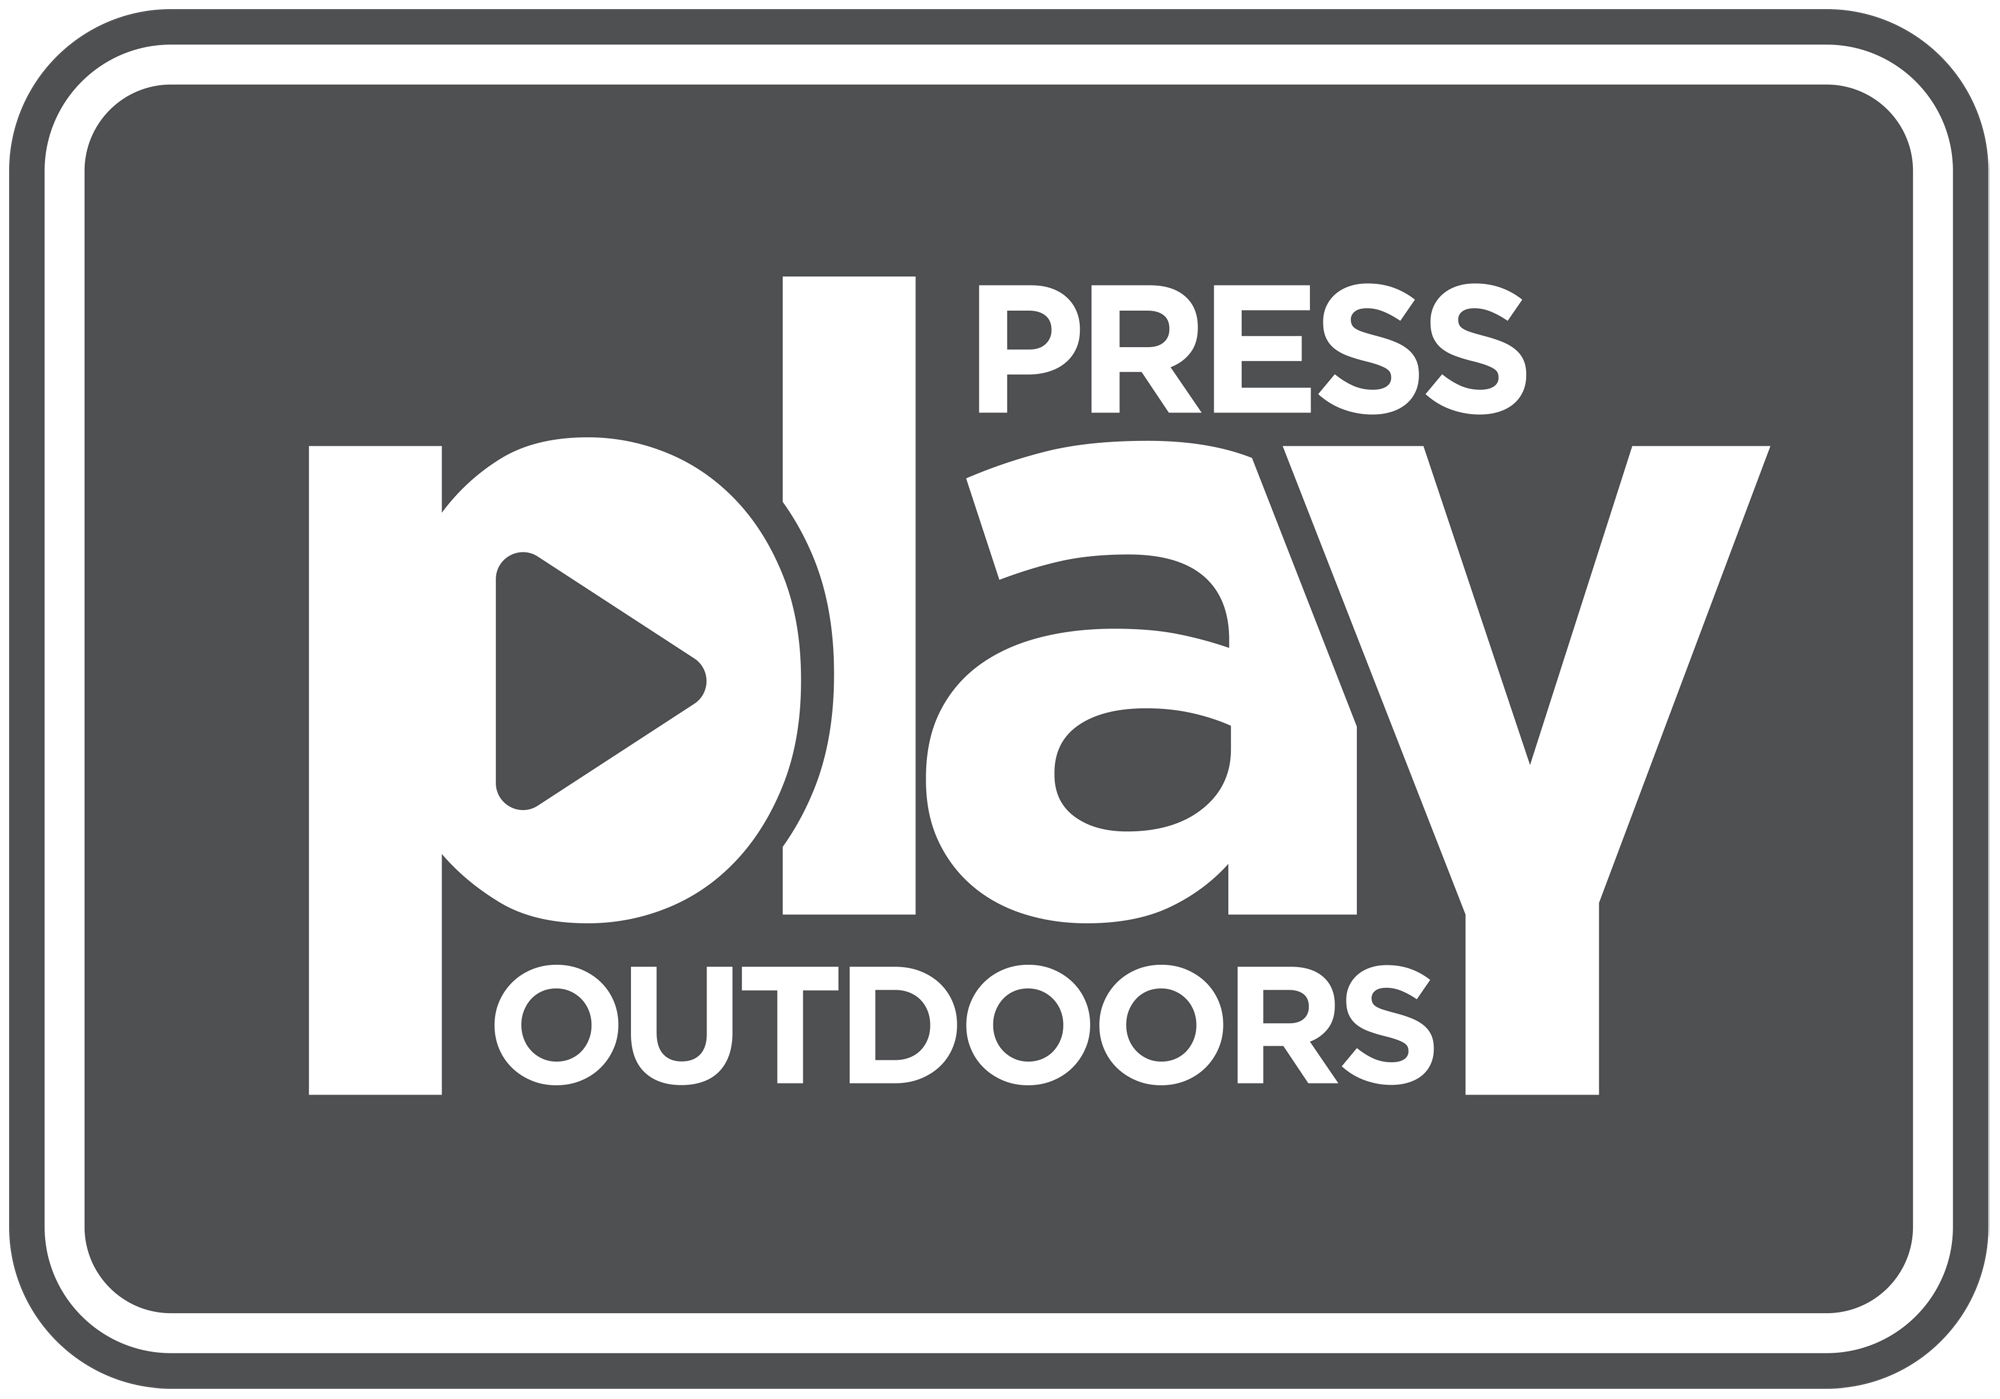 Press Play Outdoors Blog